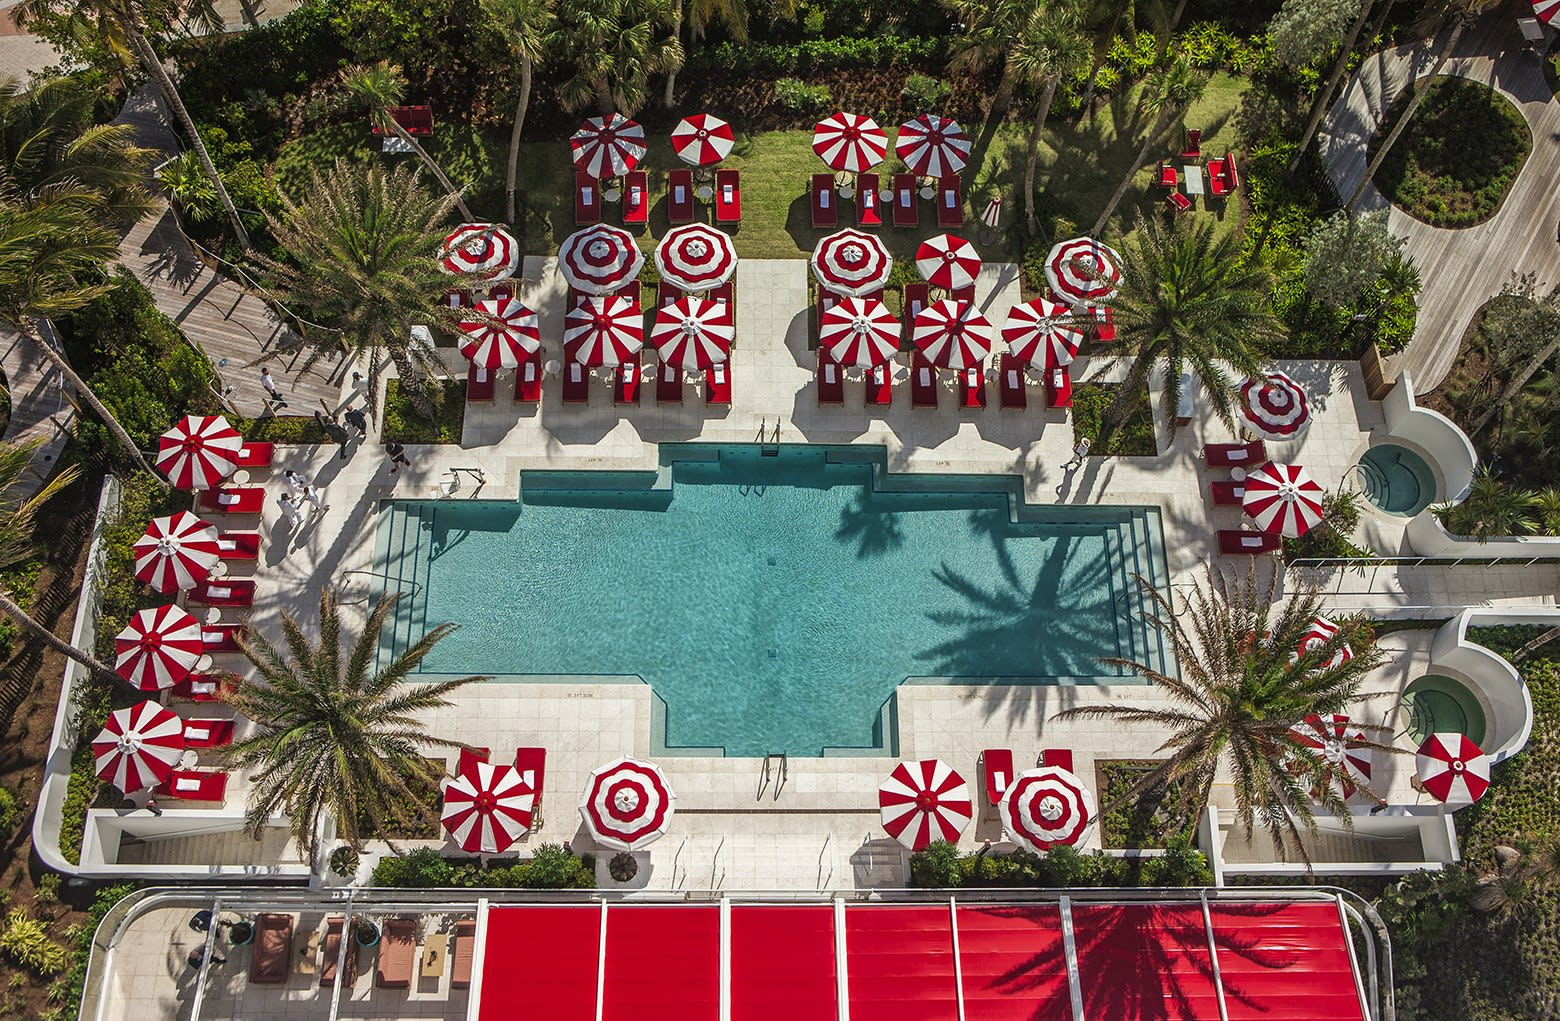 Accor to partner with Faena